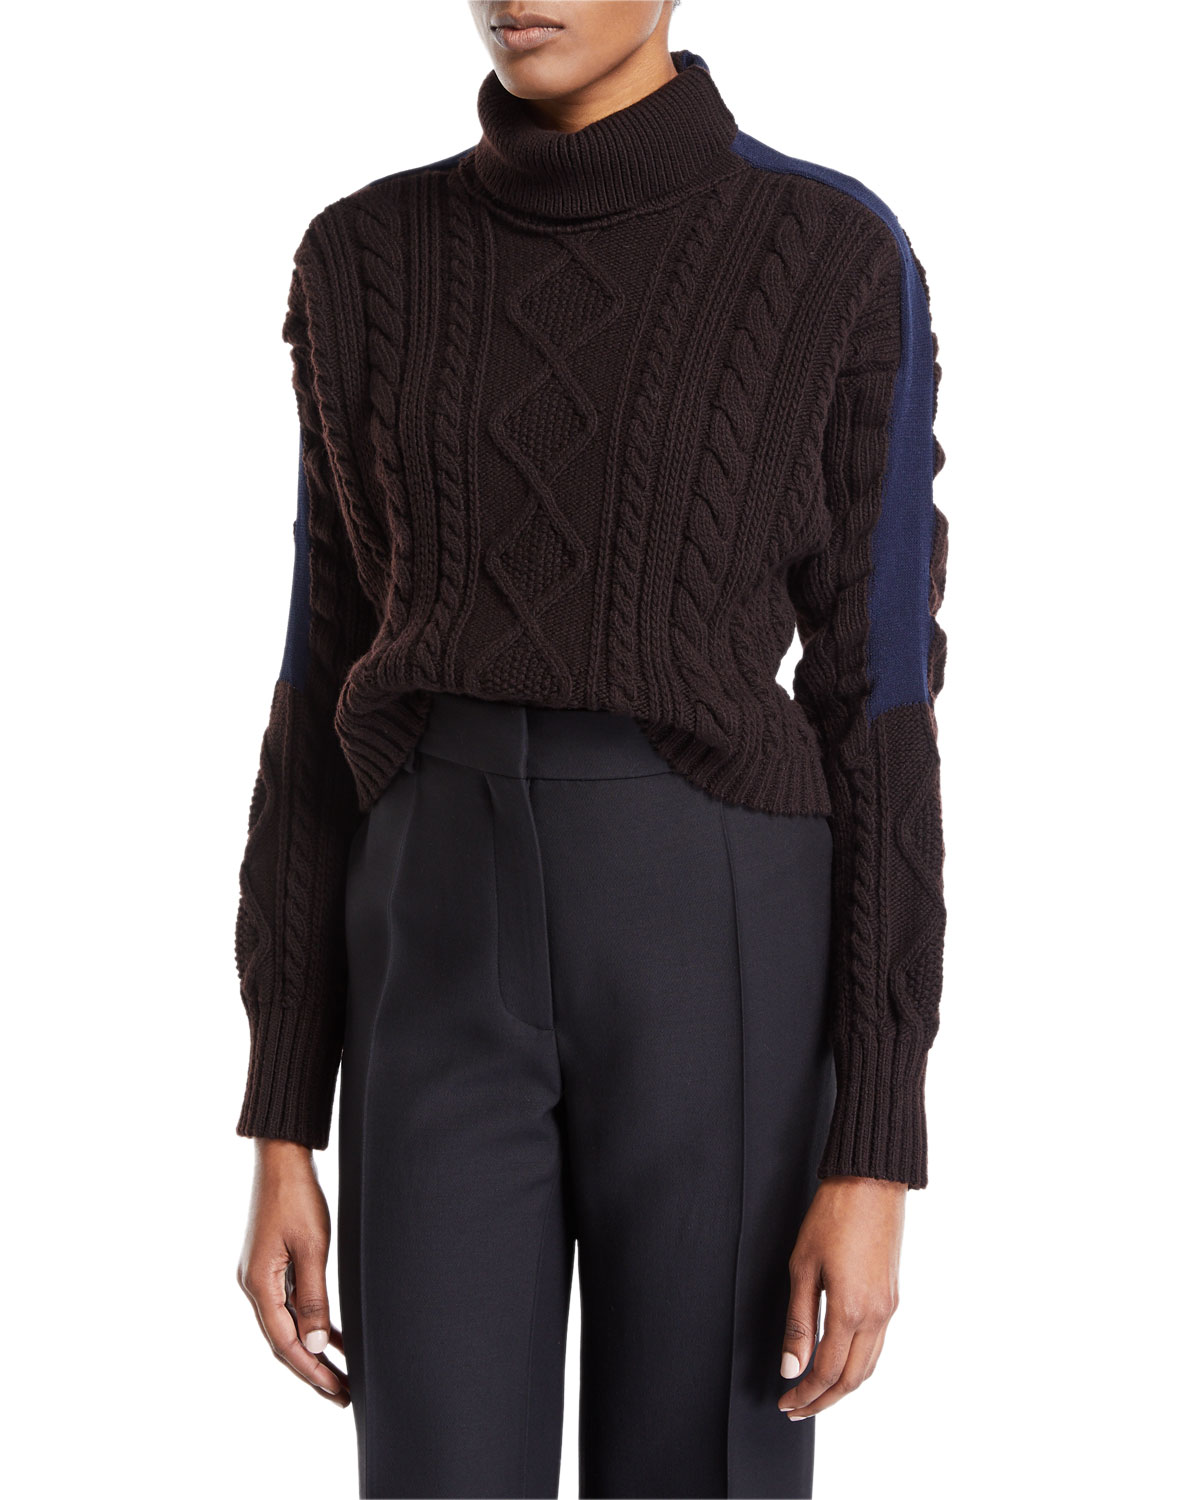 ATLEIN Turtleneck Stripe-Sleeve Cable-Knit Pullover Wool Sweater in Brown